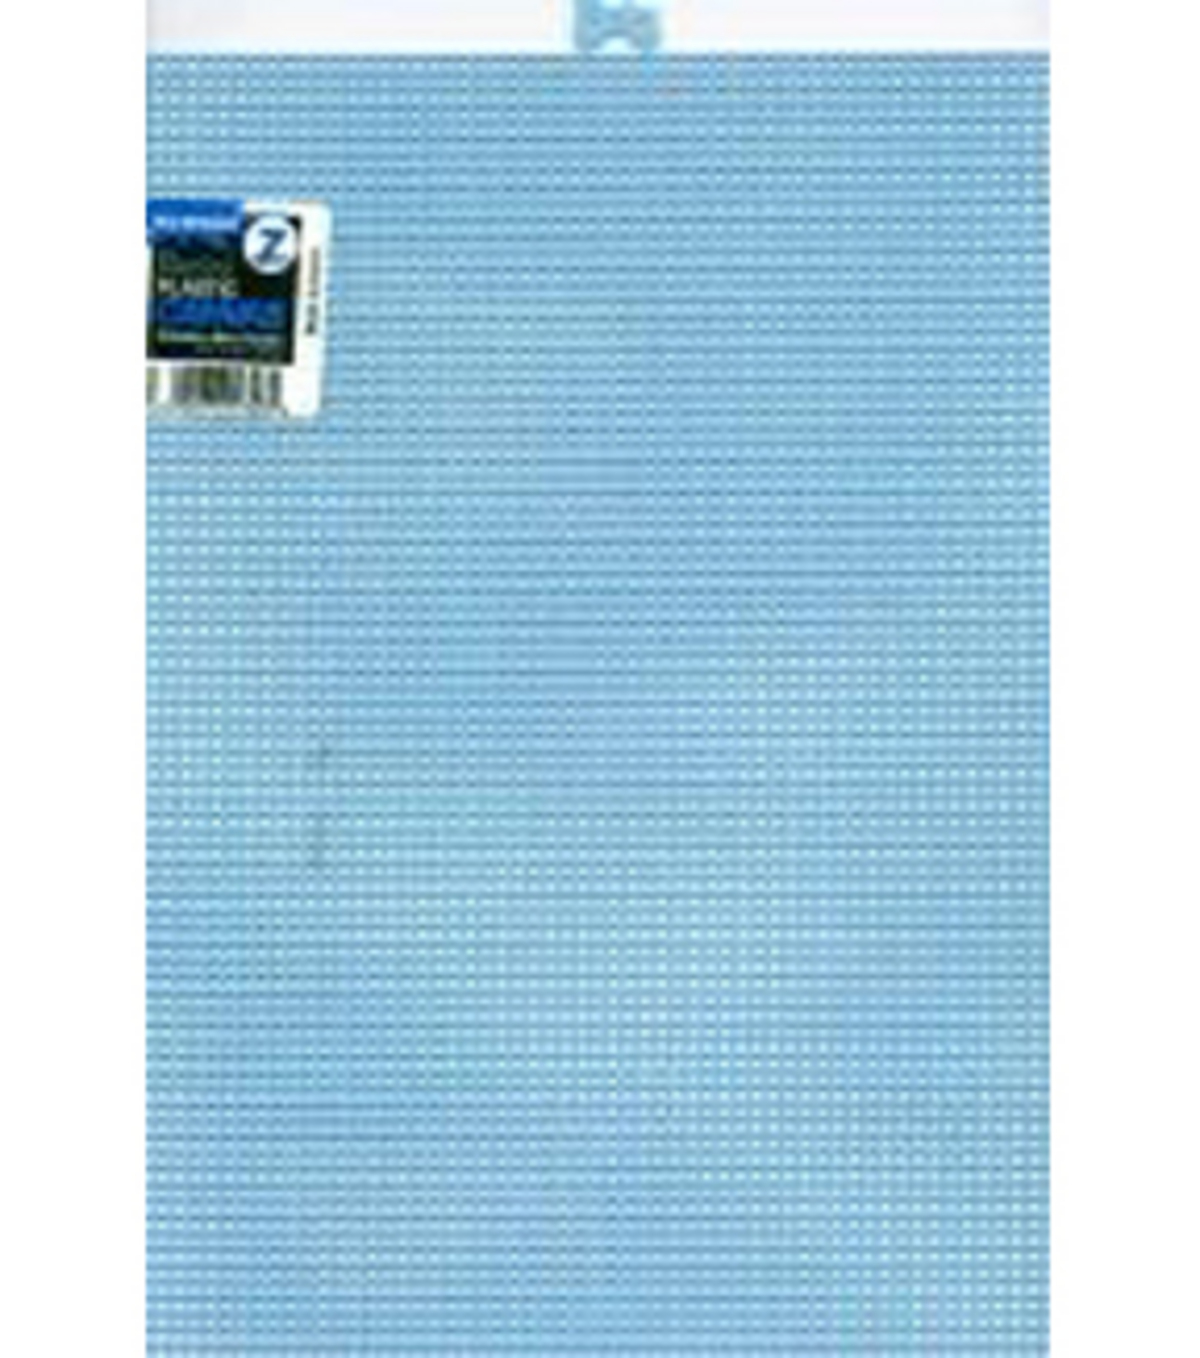 Plastic Canvas 7 Count 10\u0022X13\u0022-Light Blue